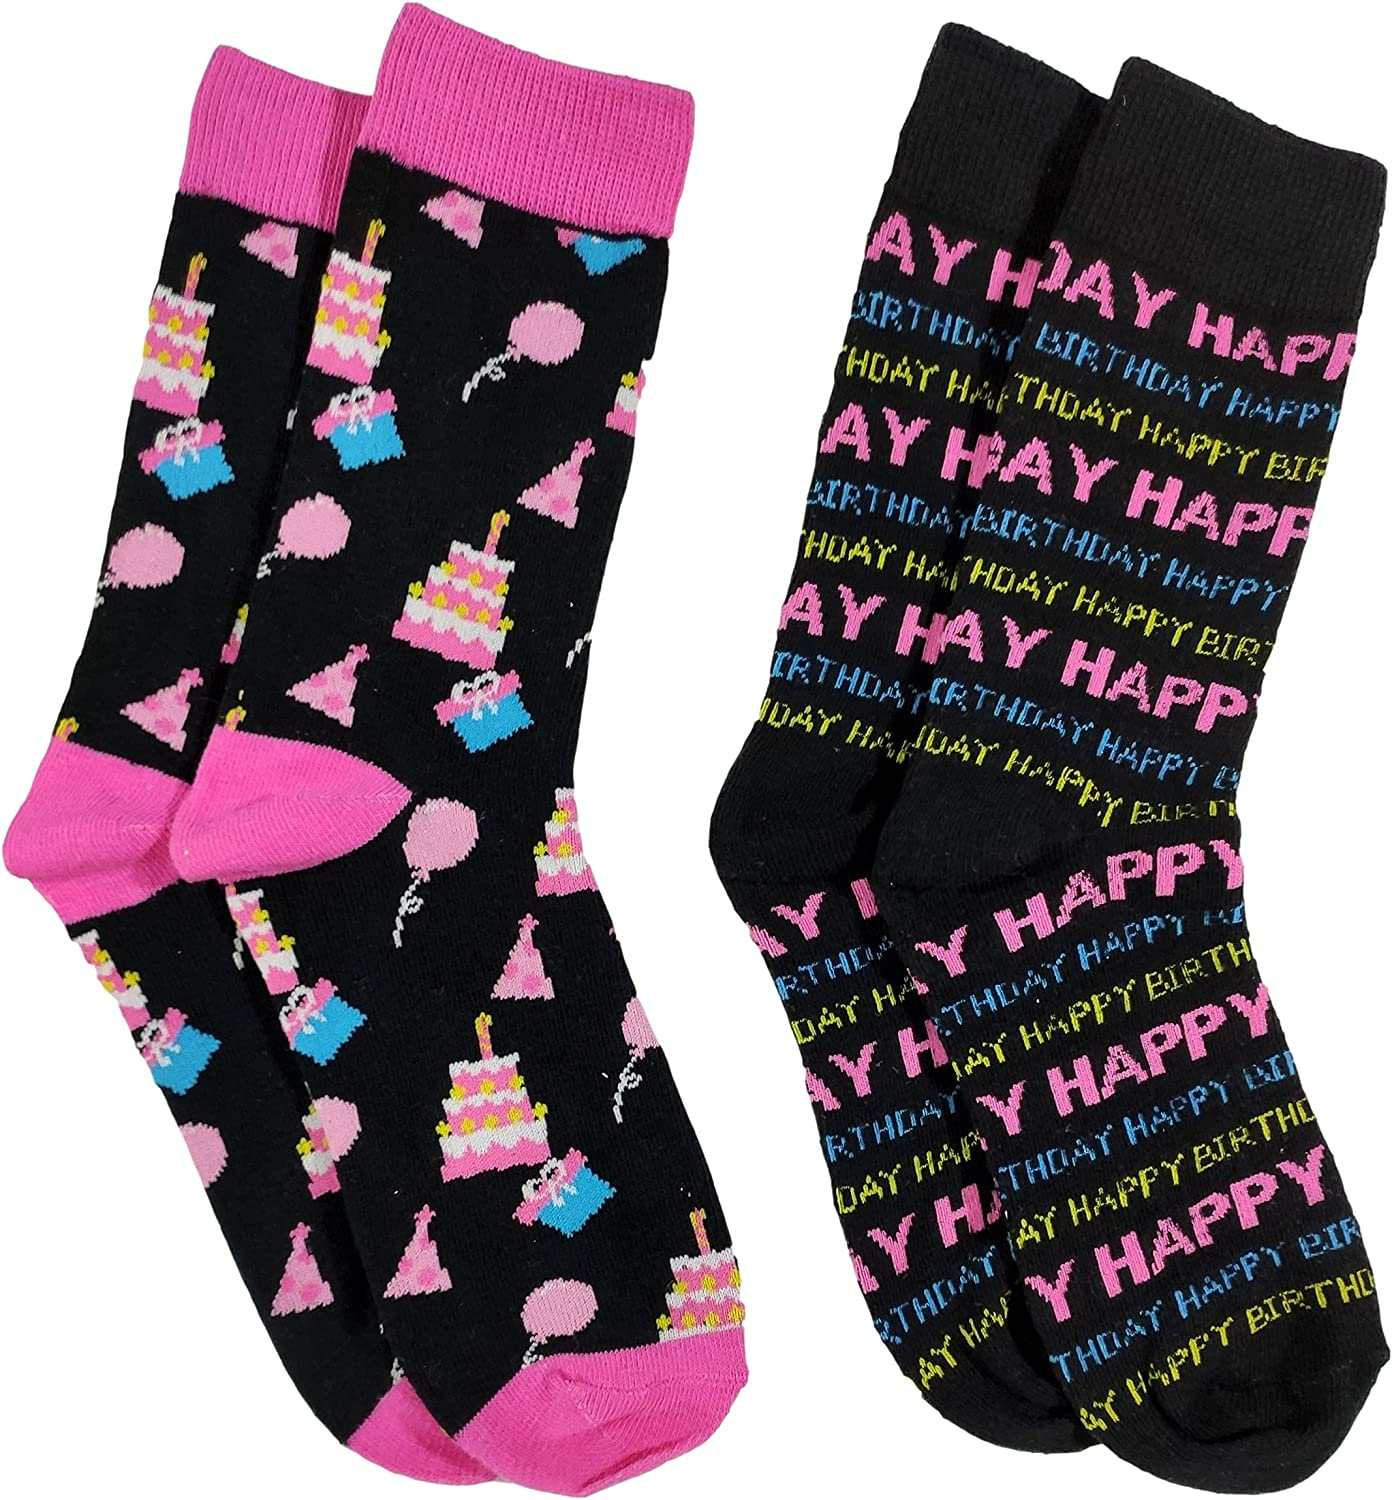 Women's Max 76% OFF Fun Crew Socks Colorful Opening large release sale 9- Novelty Funny Size